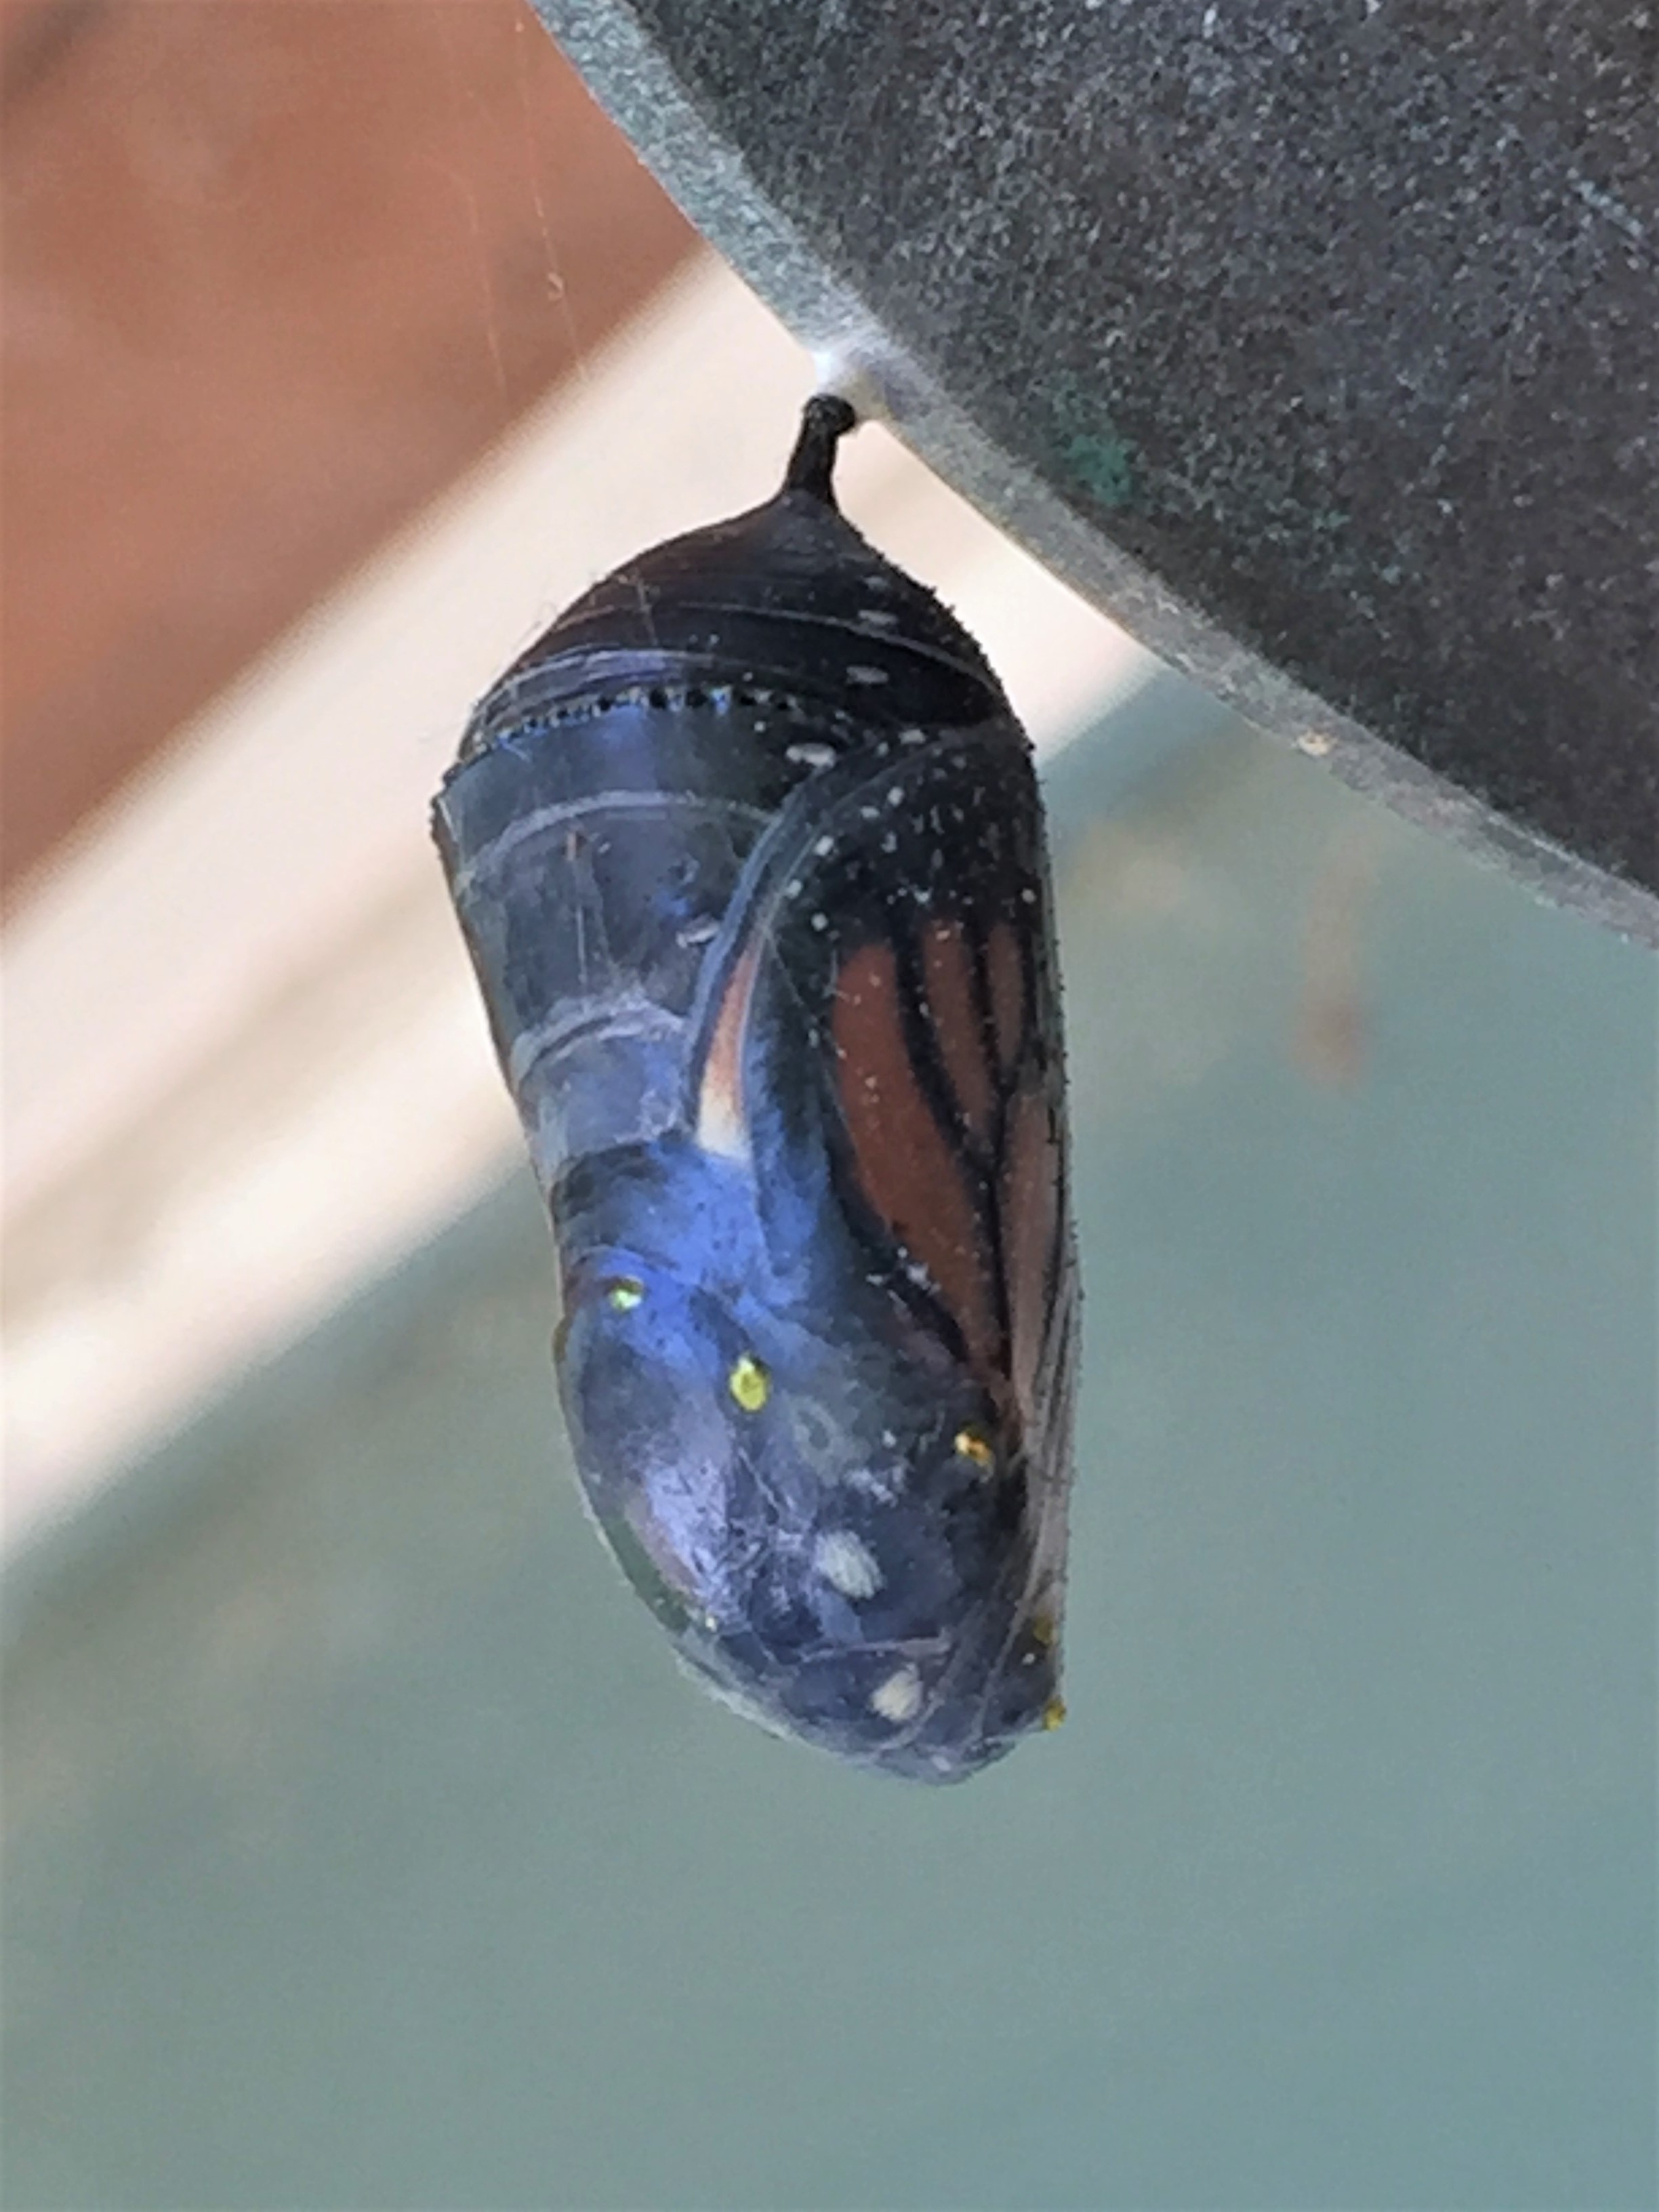 Monarch butterfly visible through its cocoon.